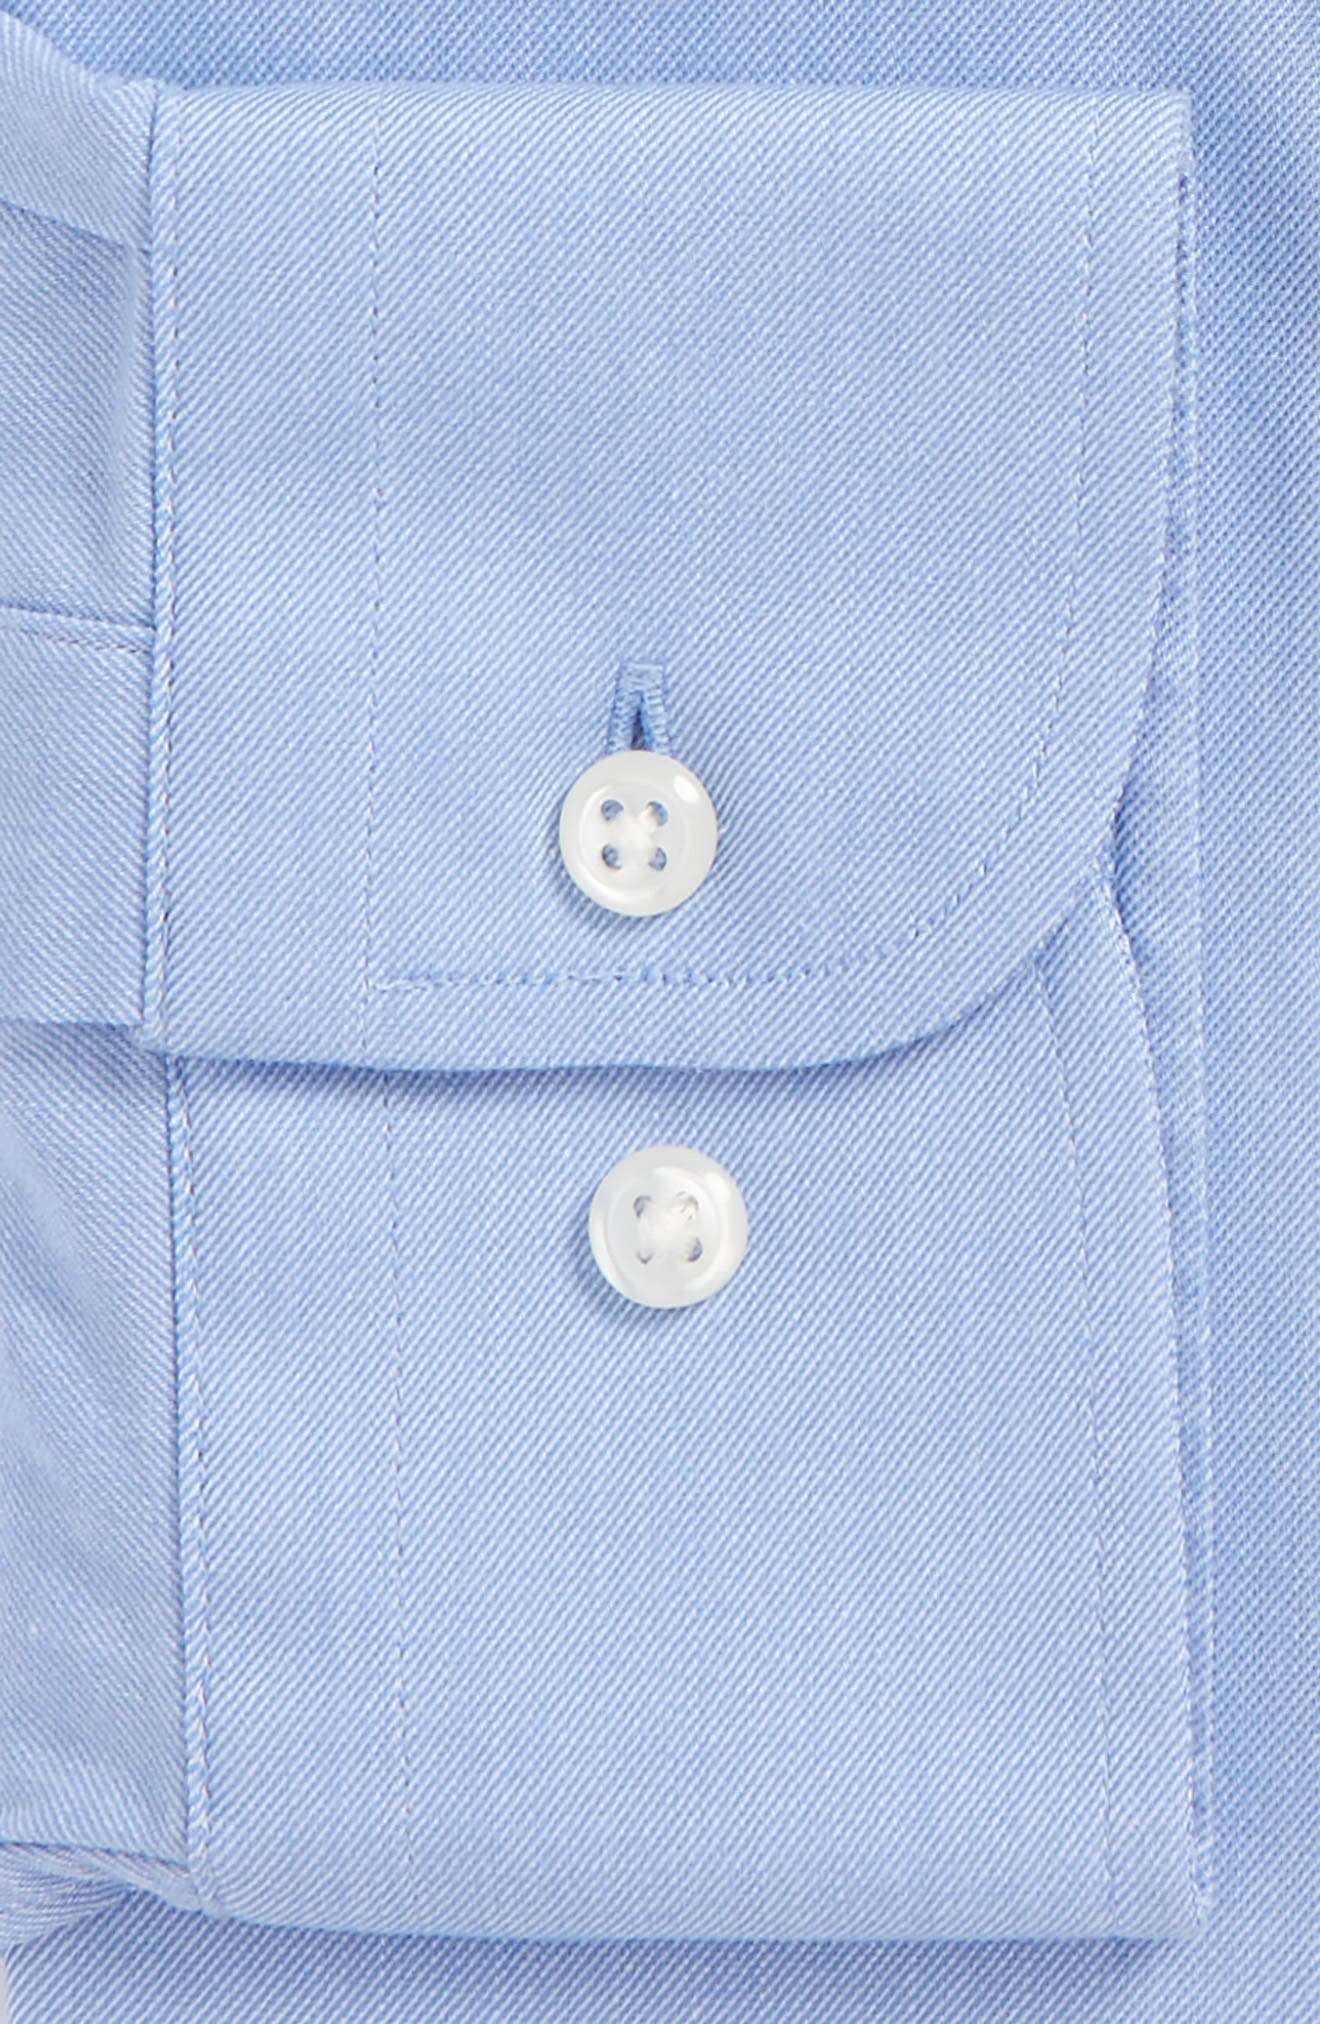 Tech-Smart Traditional Fit Stretch Solid Dress Shirt,                             Alternate thumbnail 8, color,